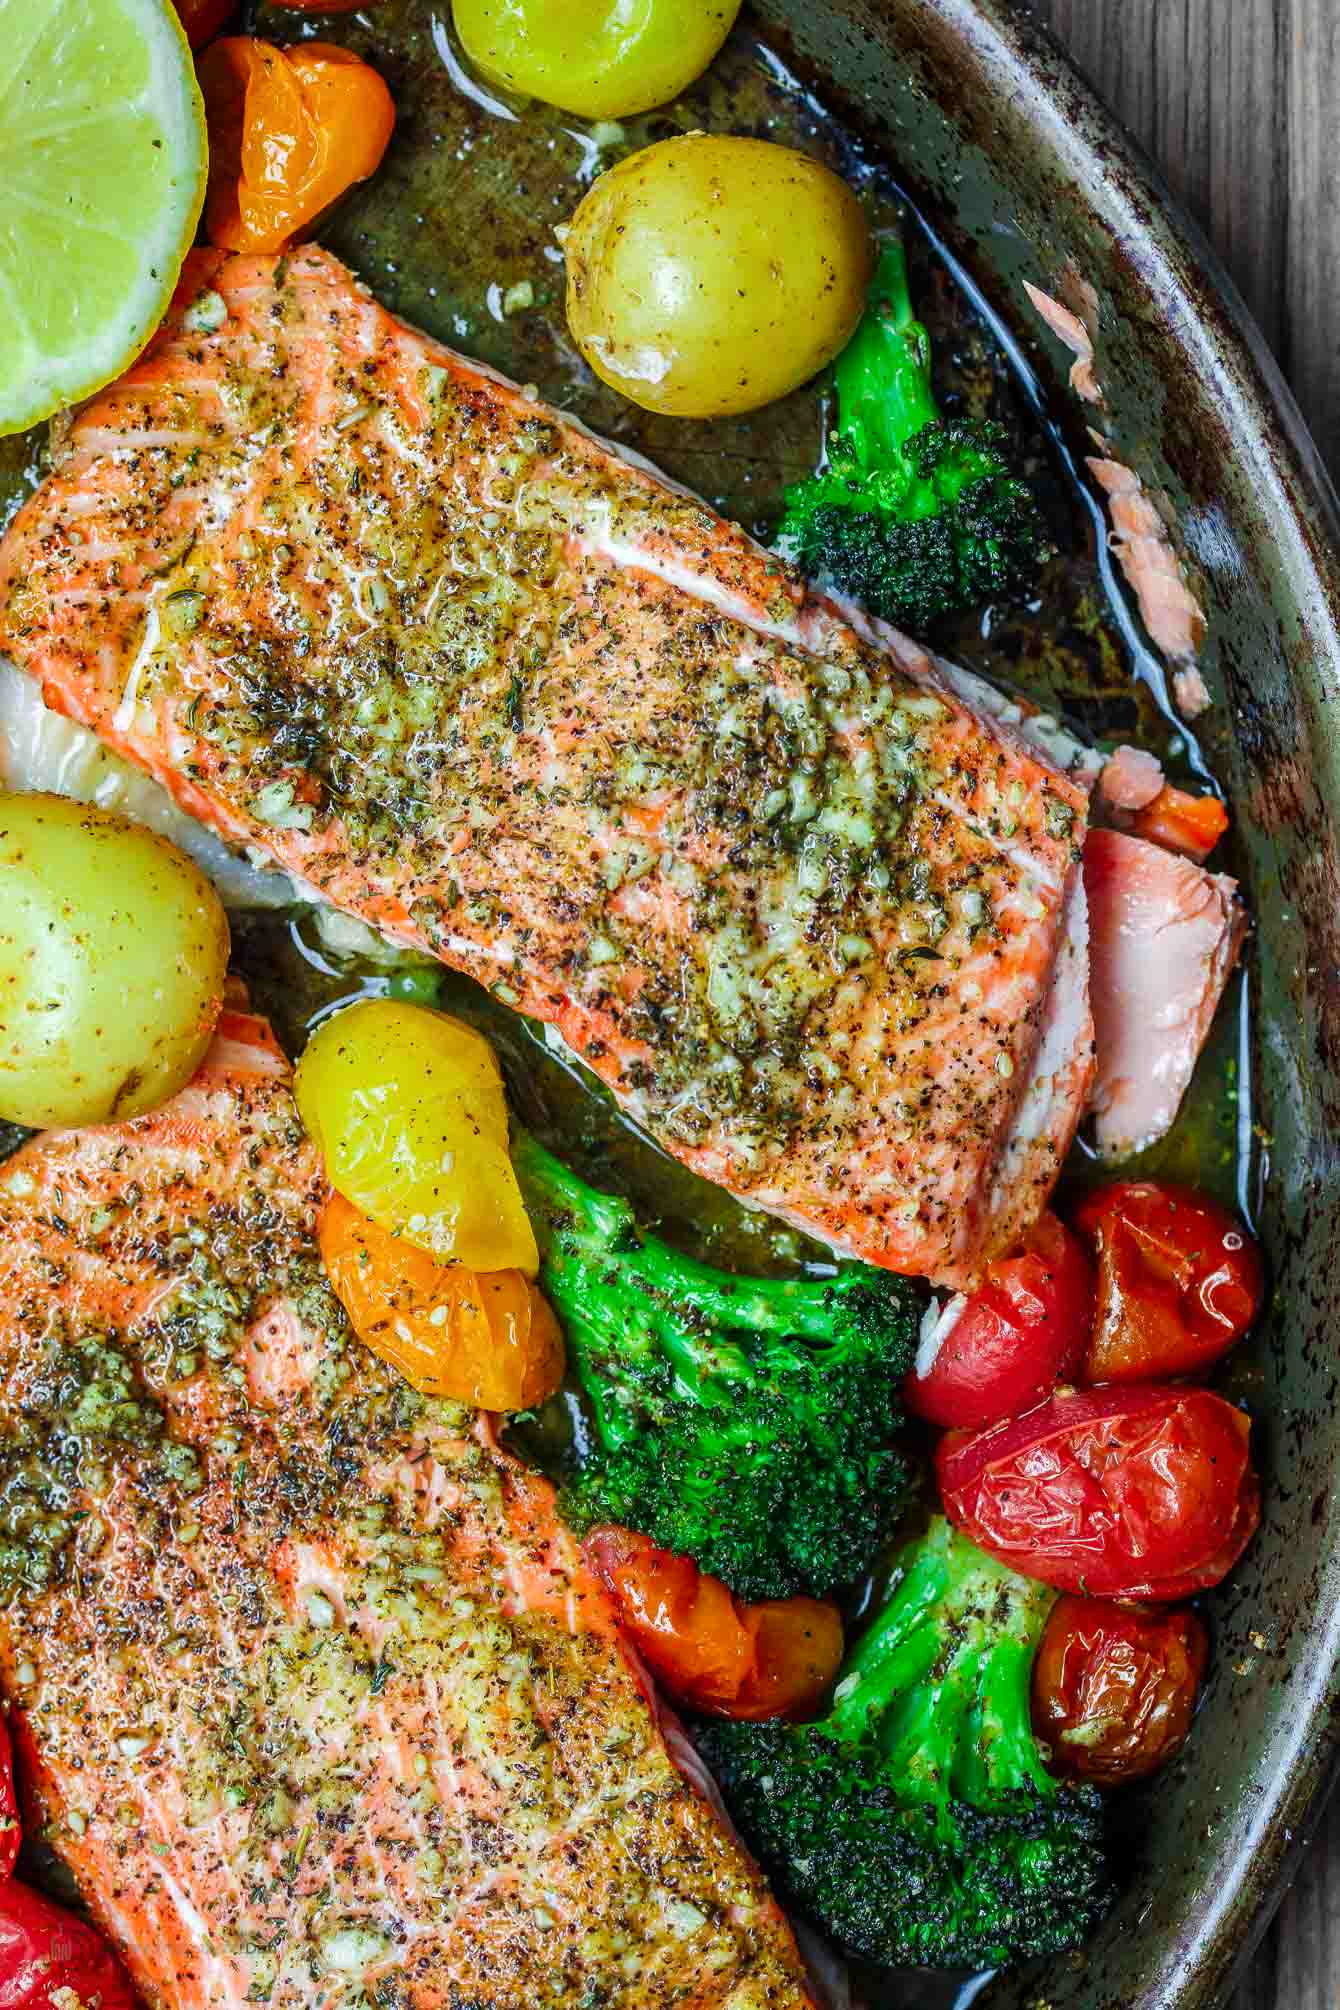 Za'atar salmon with broccoli, grape tomatoes olive oil and lemon wedge